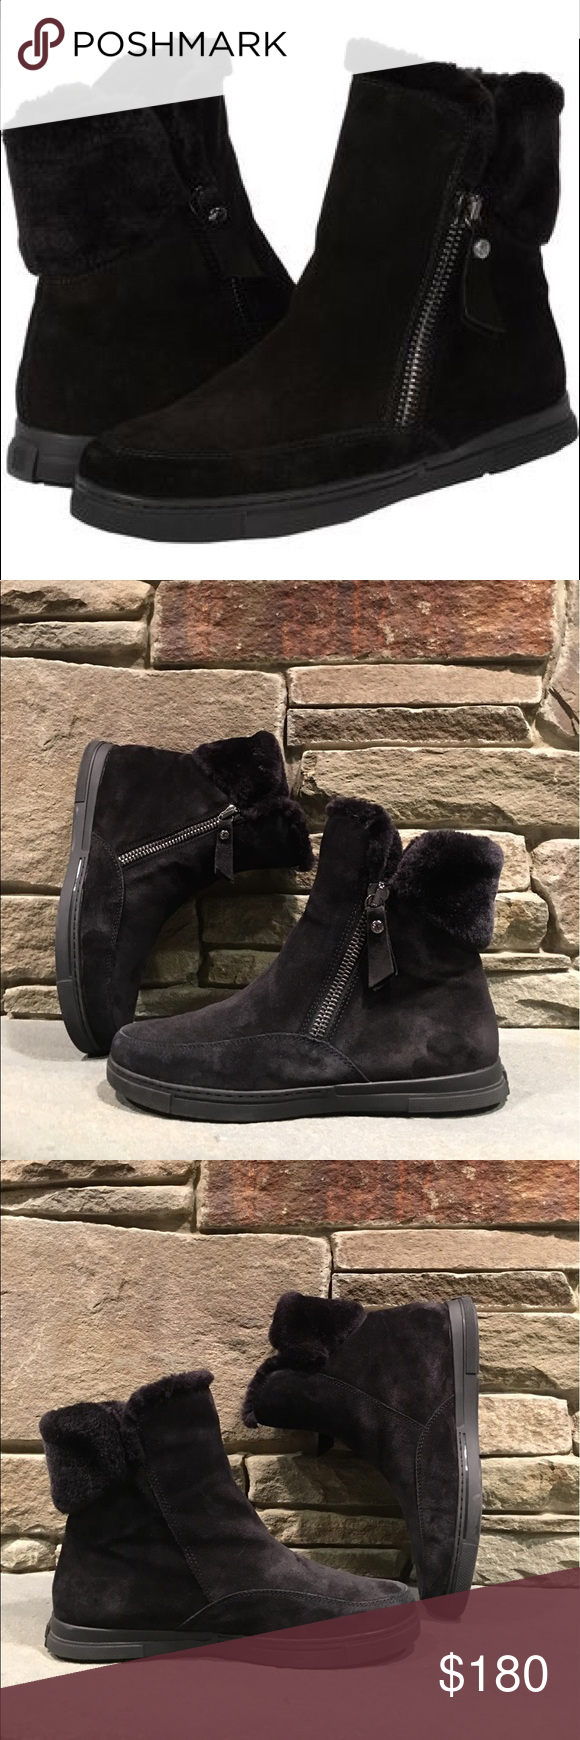 889715345ab4 Stuart Weitzman Furgie Boot The Stuart Weitzman Furgie Boots feature a  Suede upper with a round